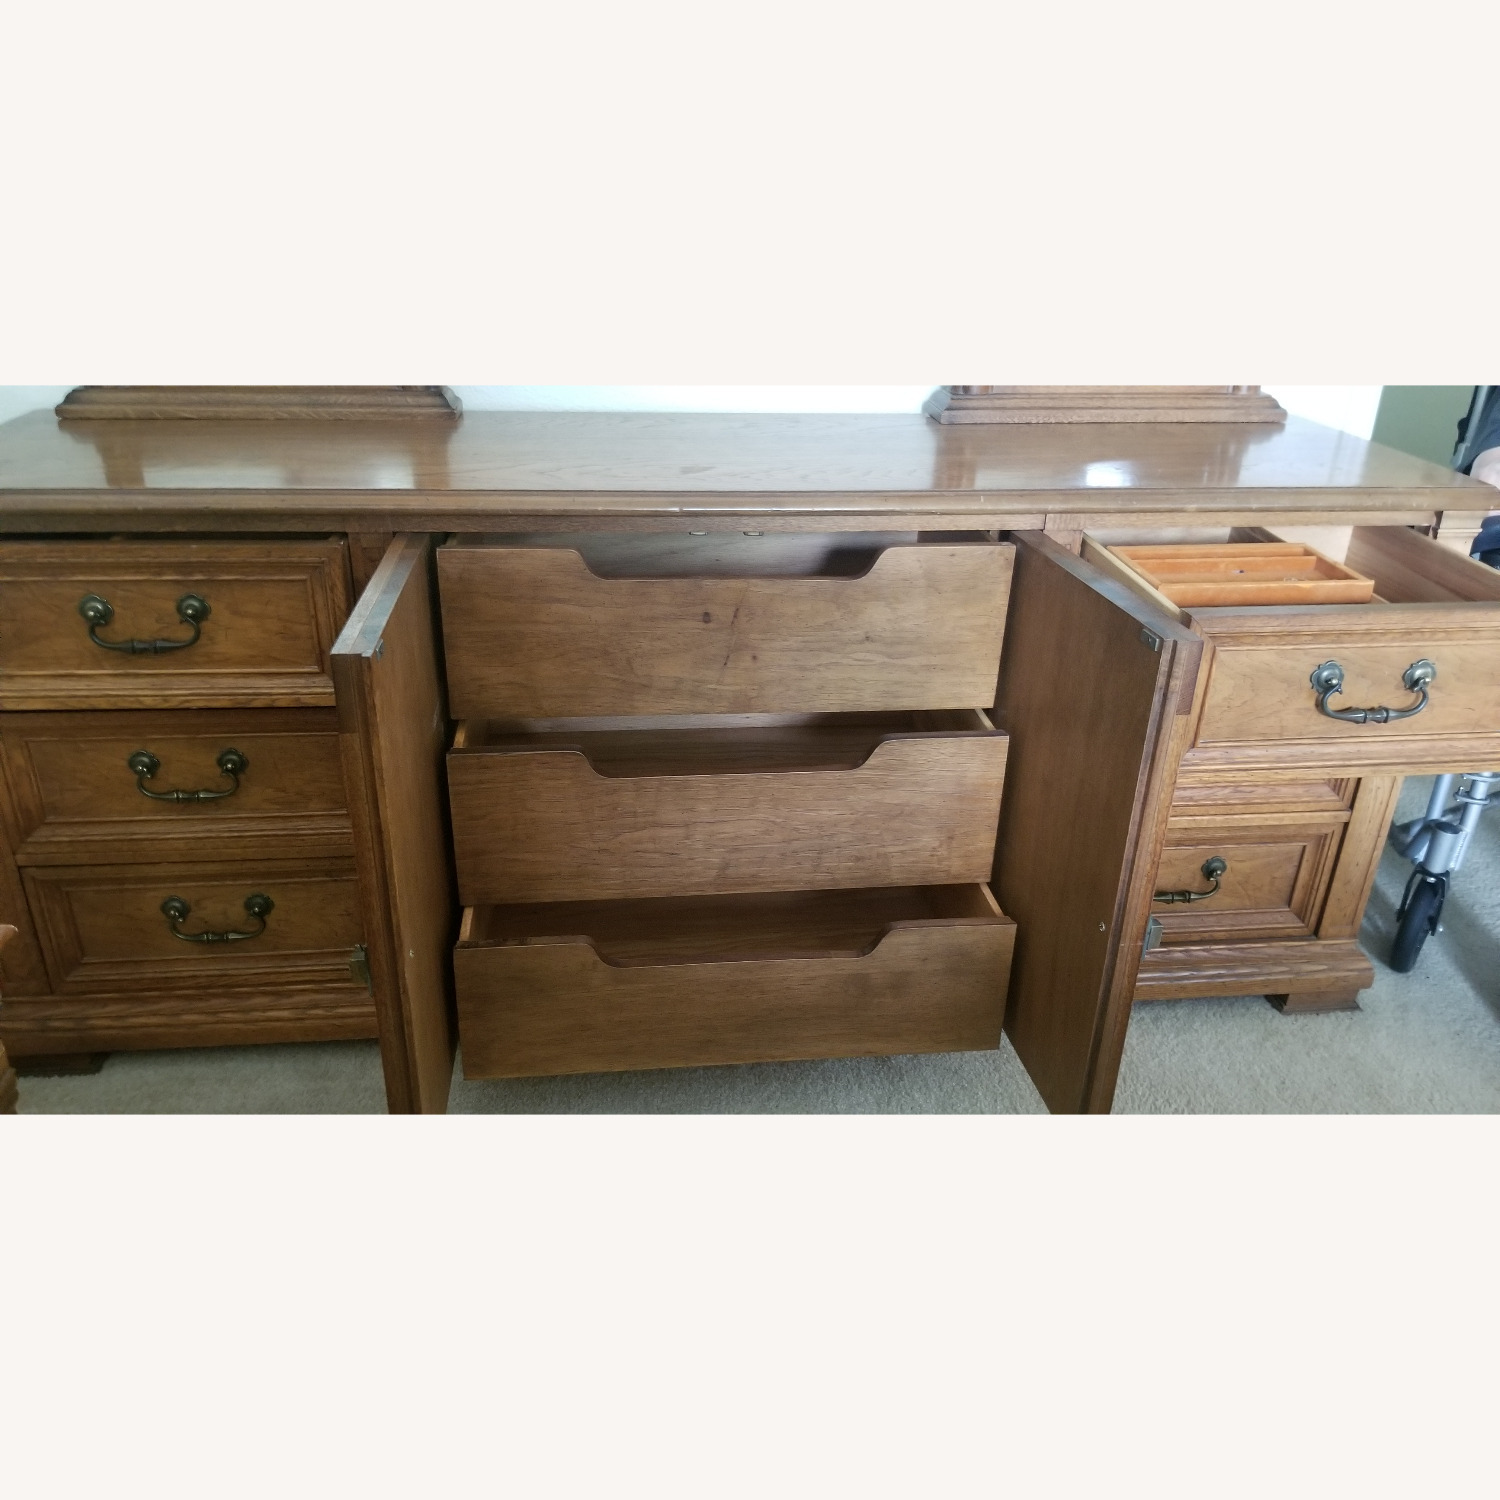 Vintage Drexel Dresser with two Large Mirrors - image-7